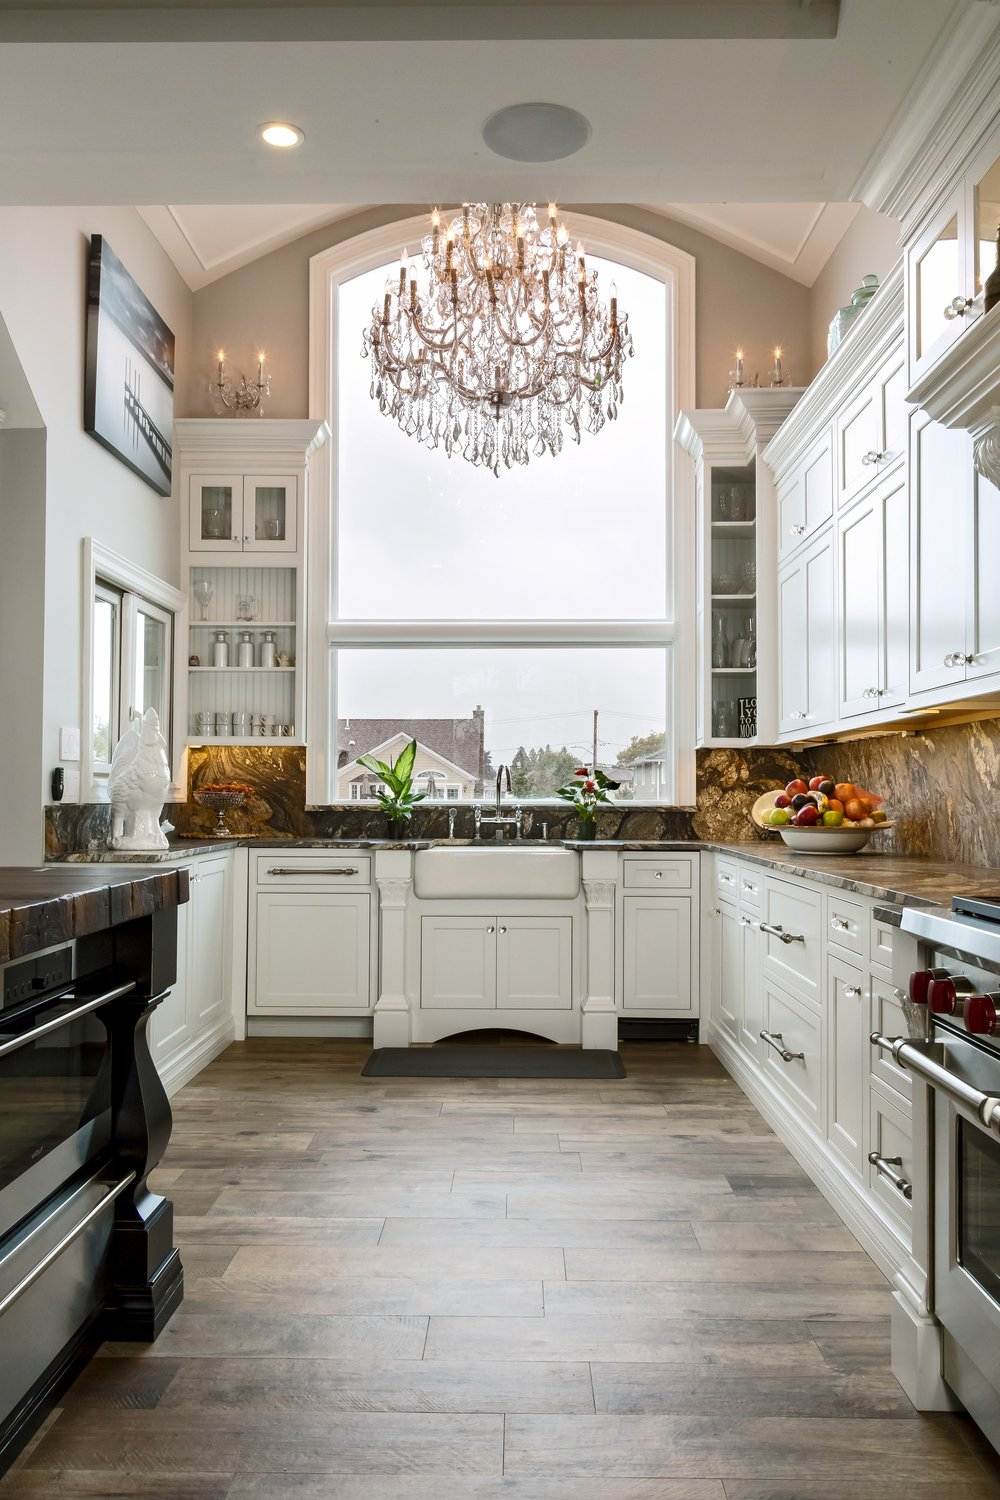 Traditional style kitchen with white cabinets and shelves